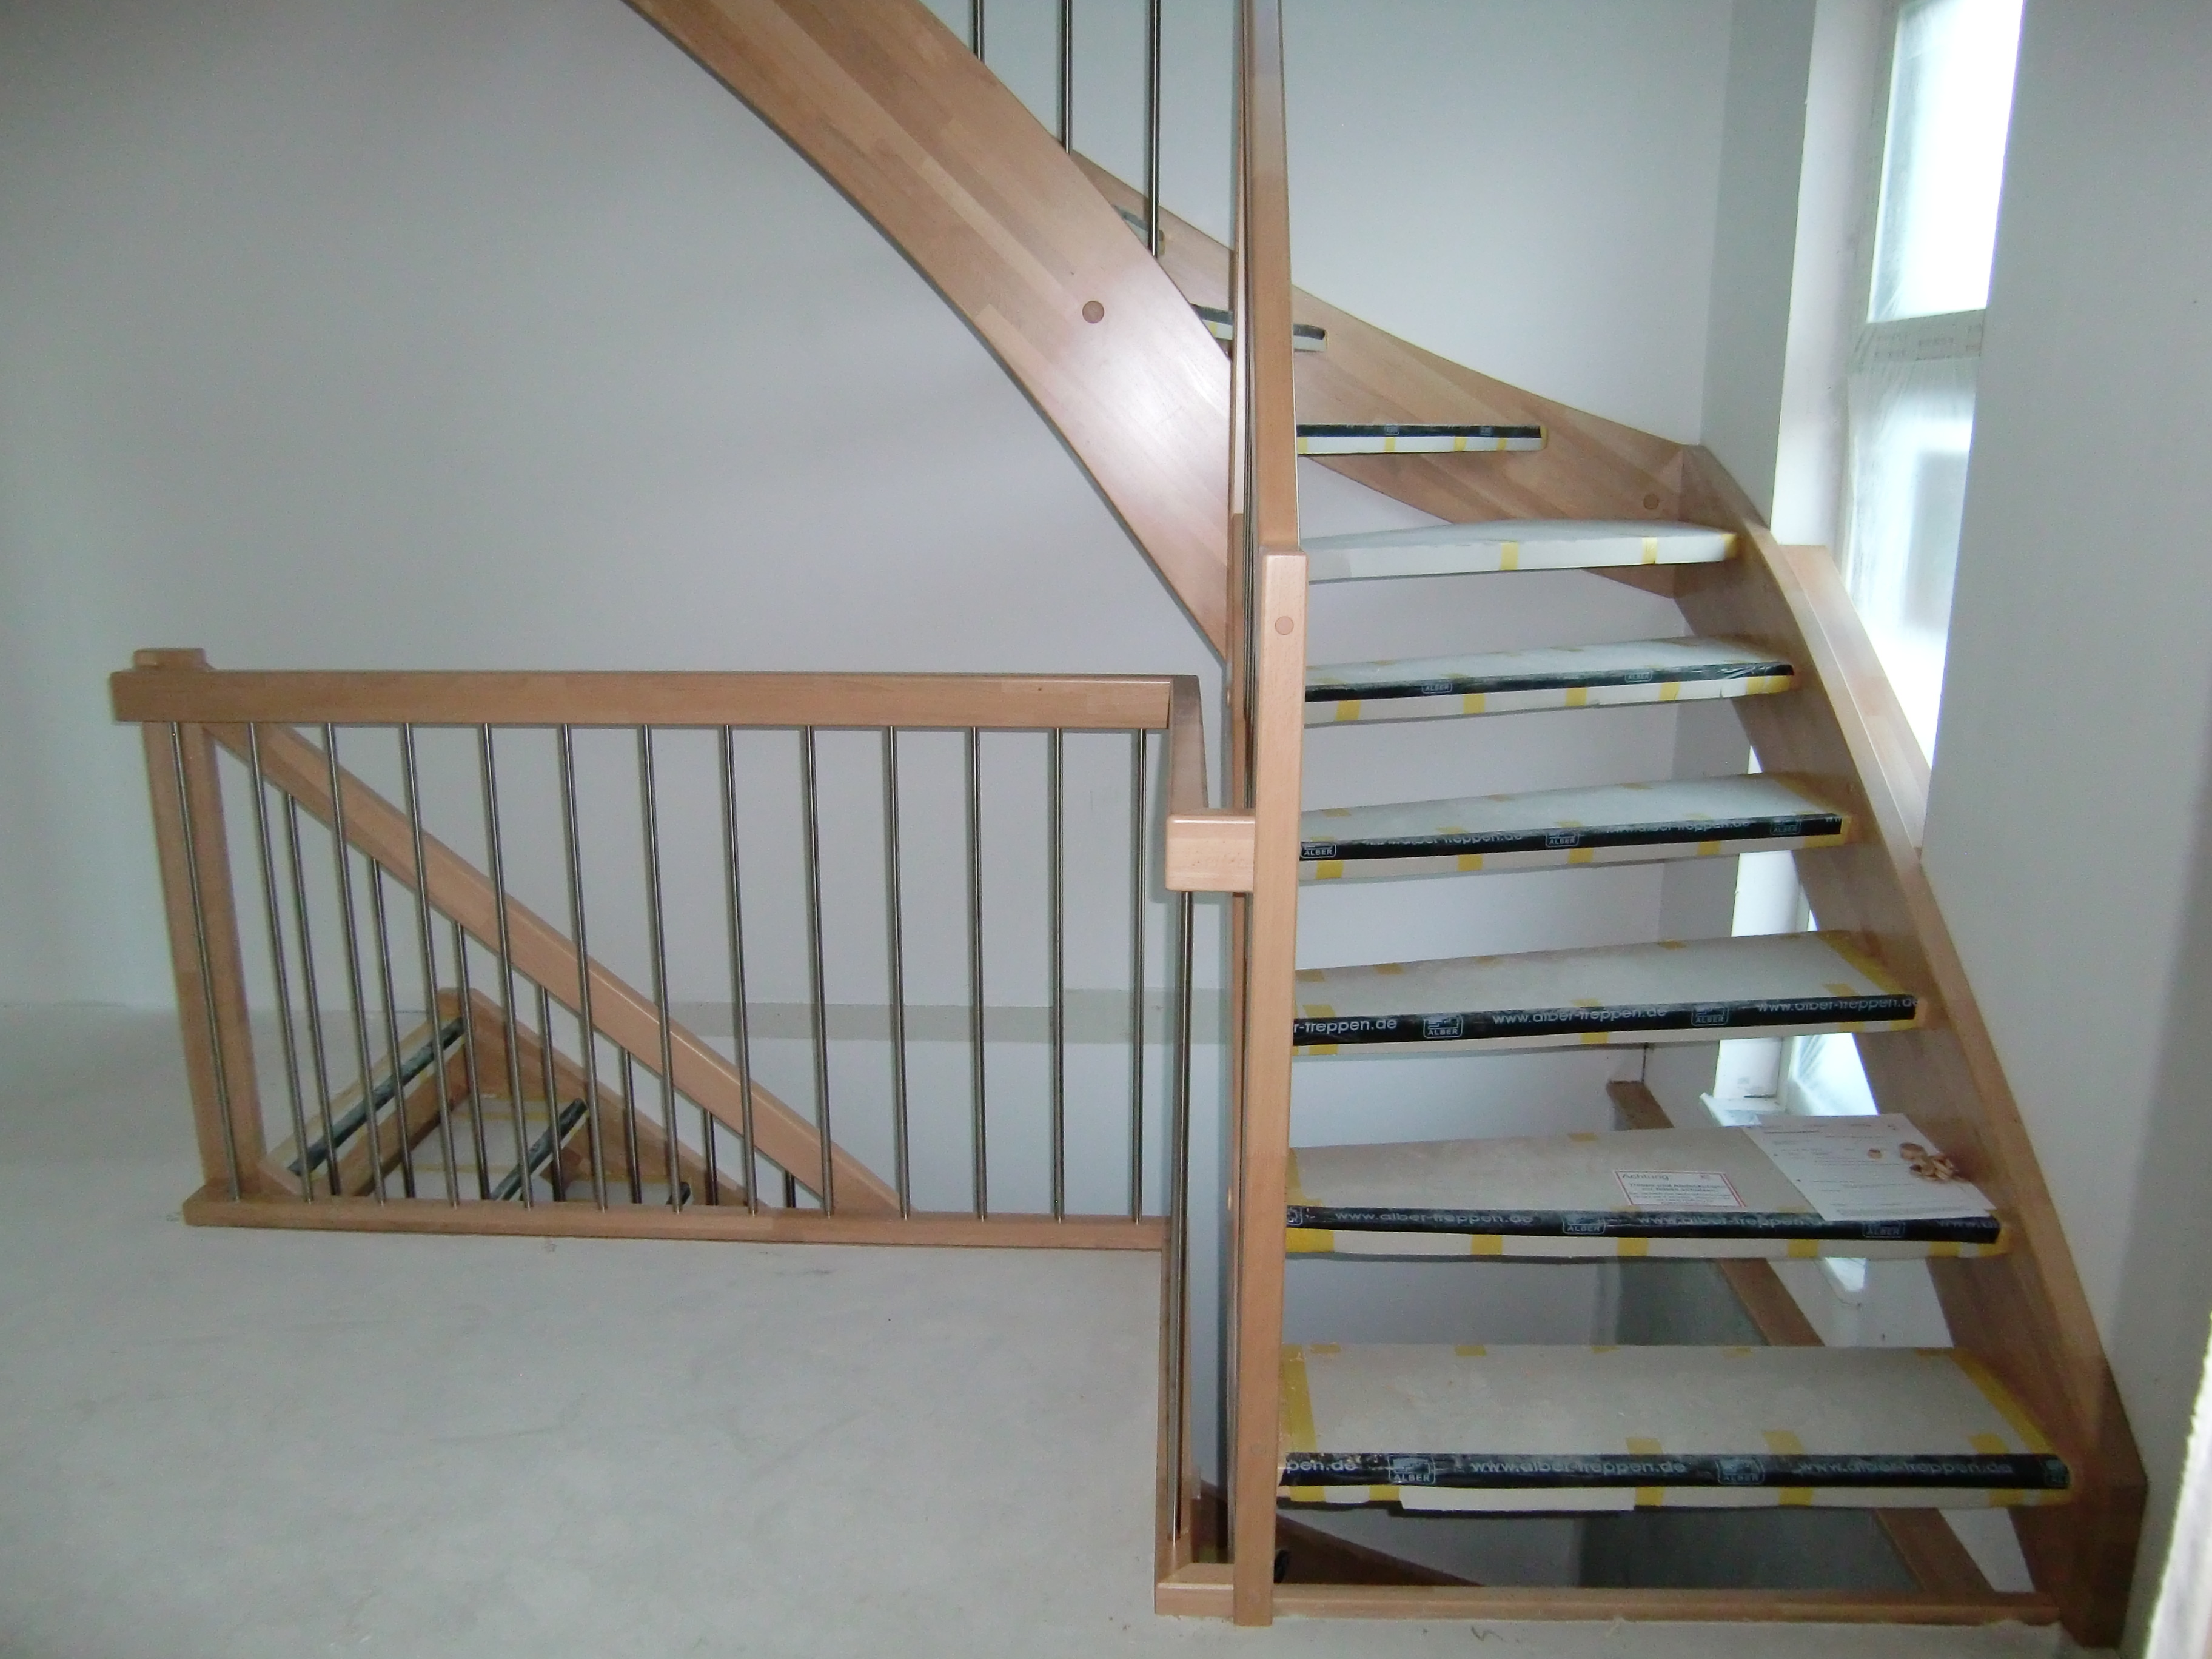 Unsere Treppe